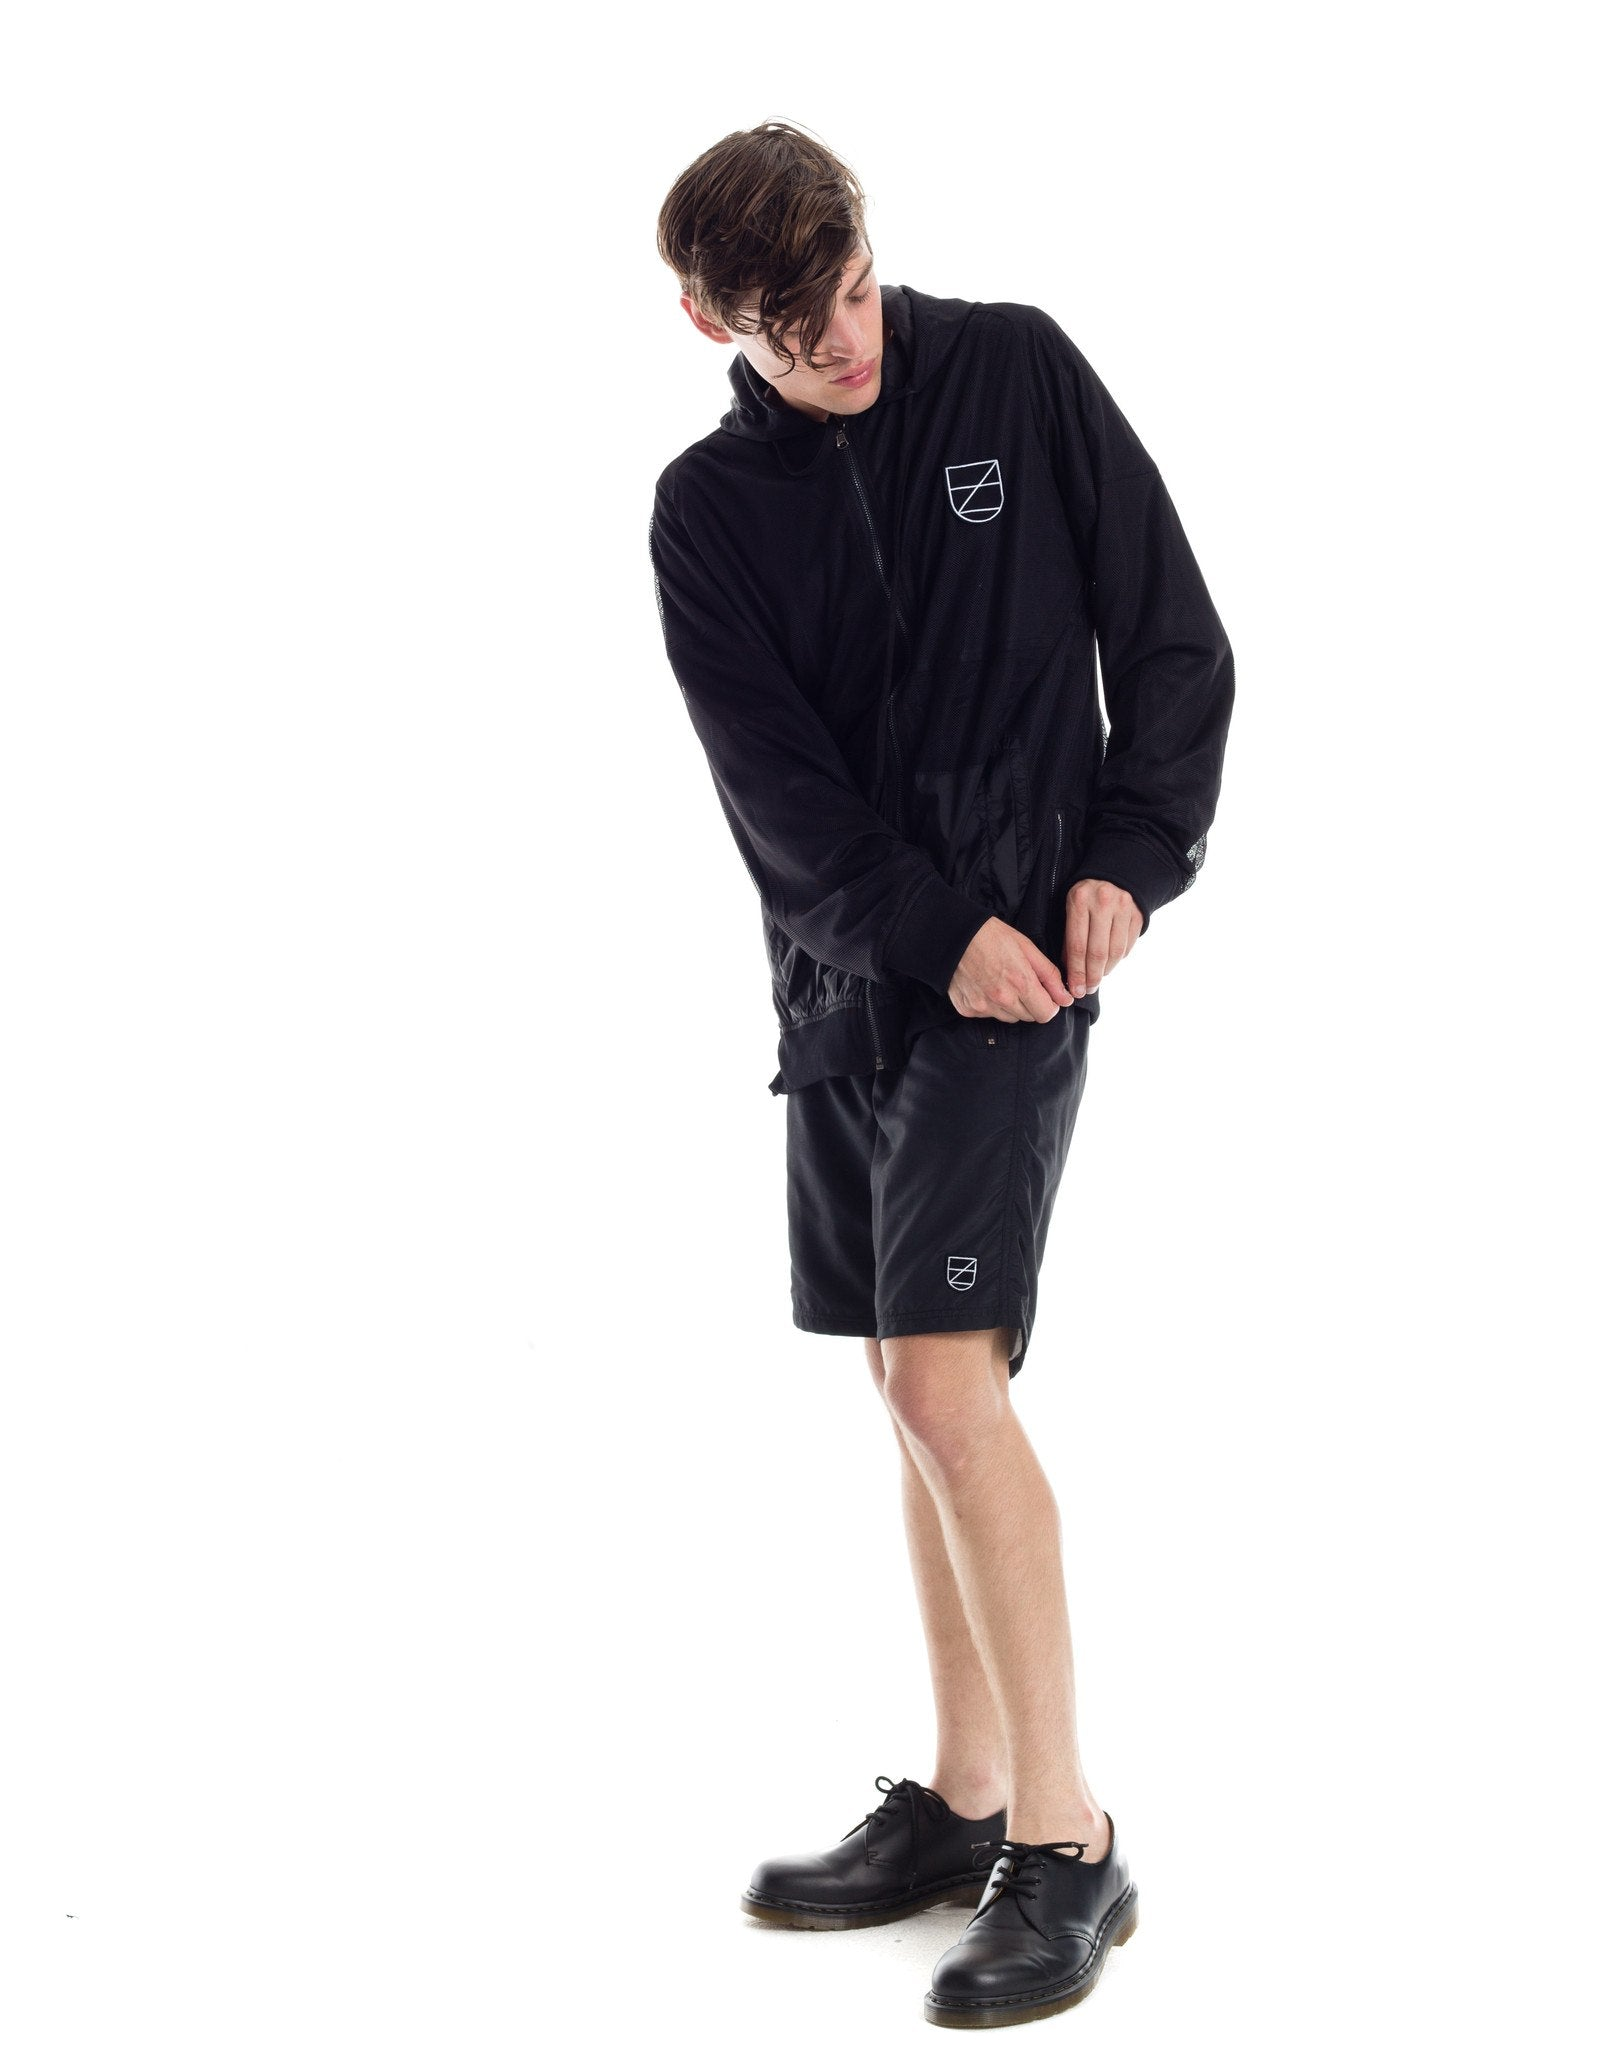 Hozer Pullover Jacket - Black